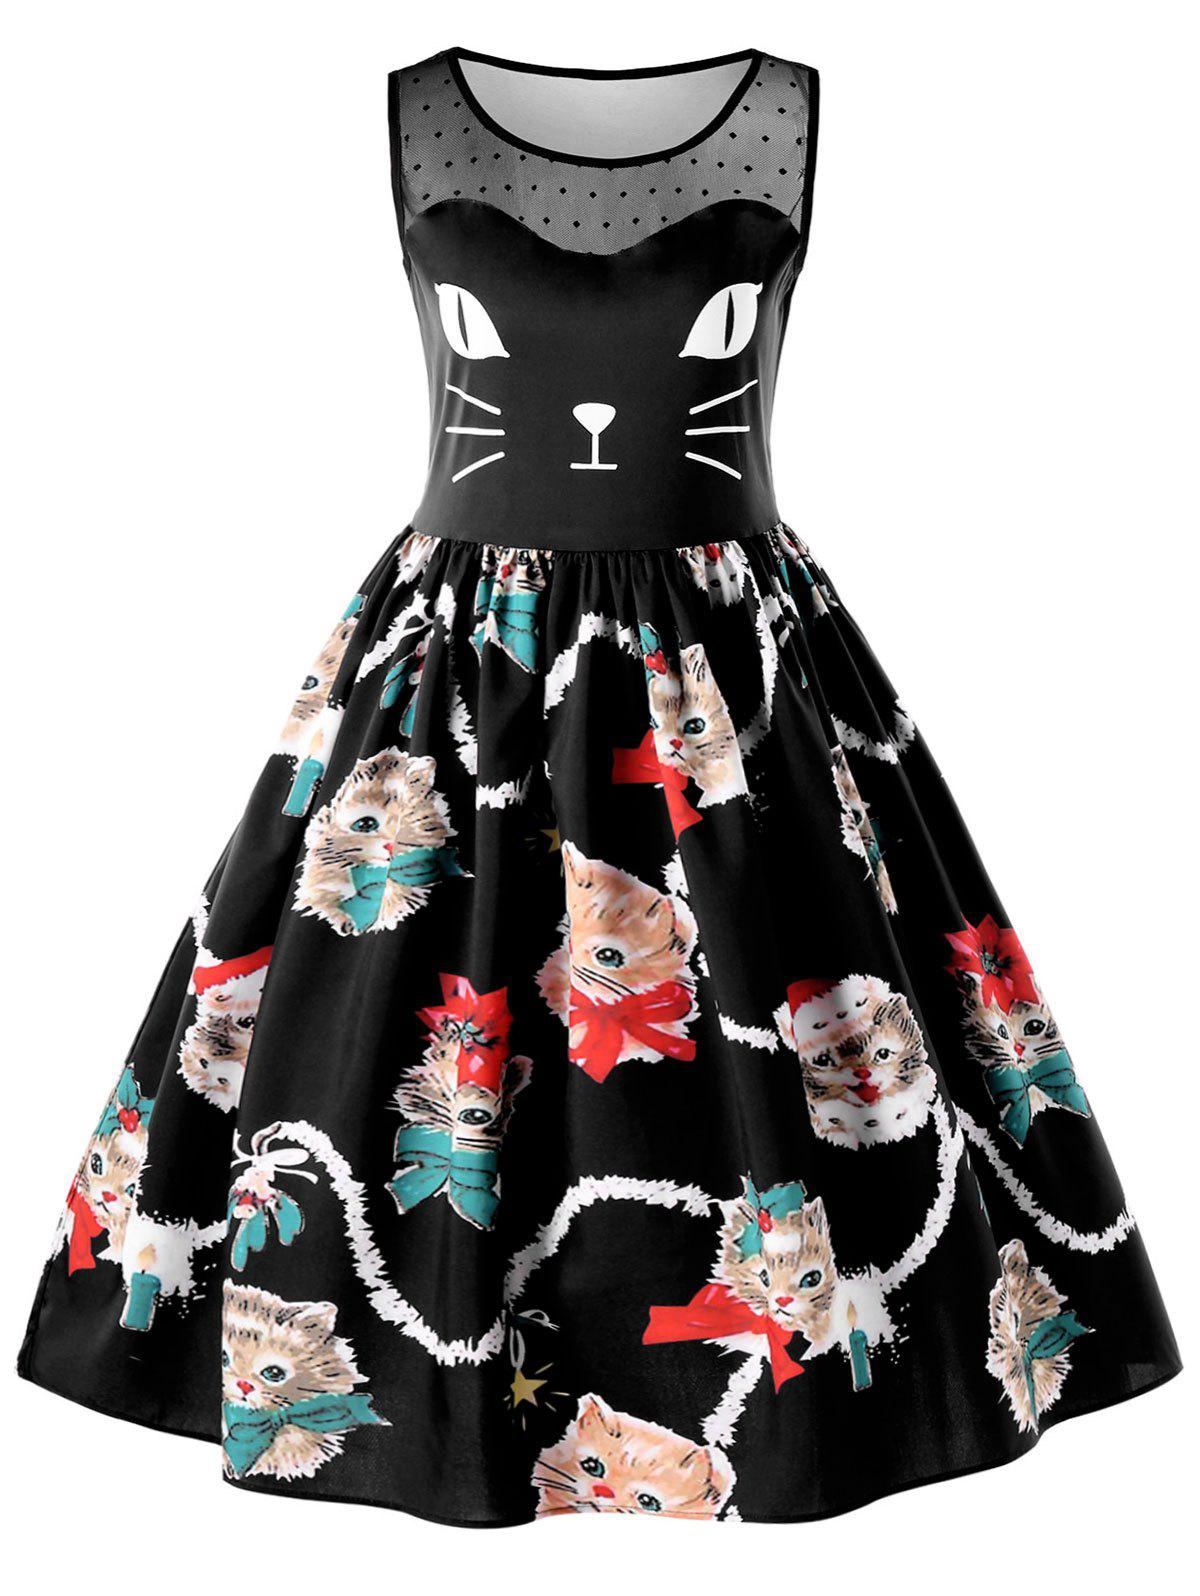 Kitten Print Sleeveless Fit and Flare Dress - BLACK XL